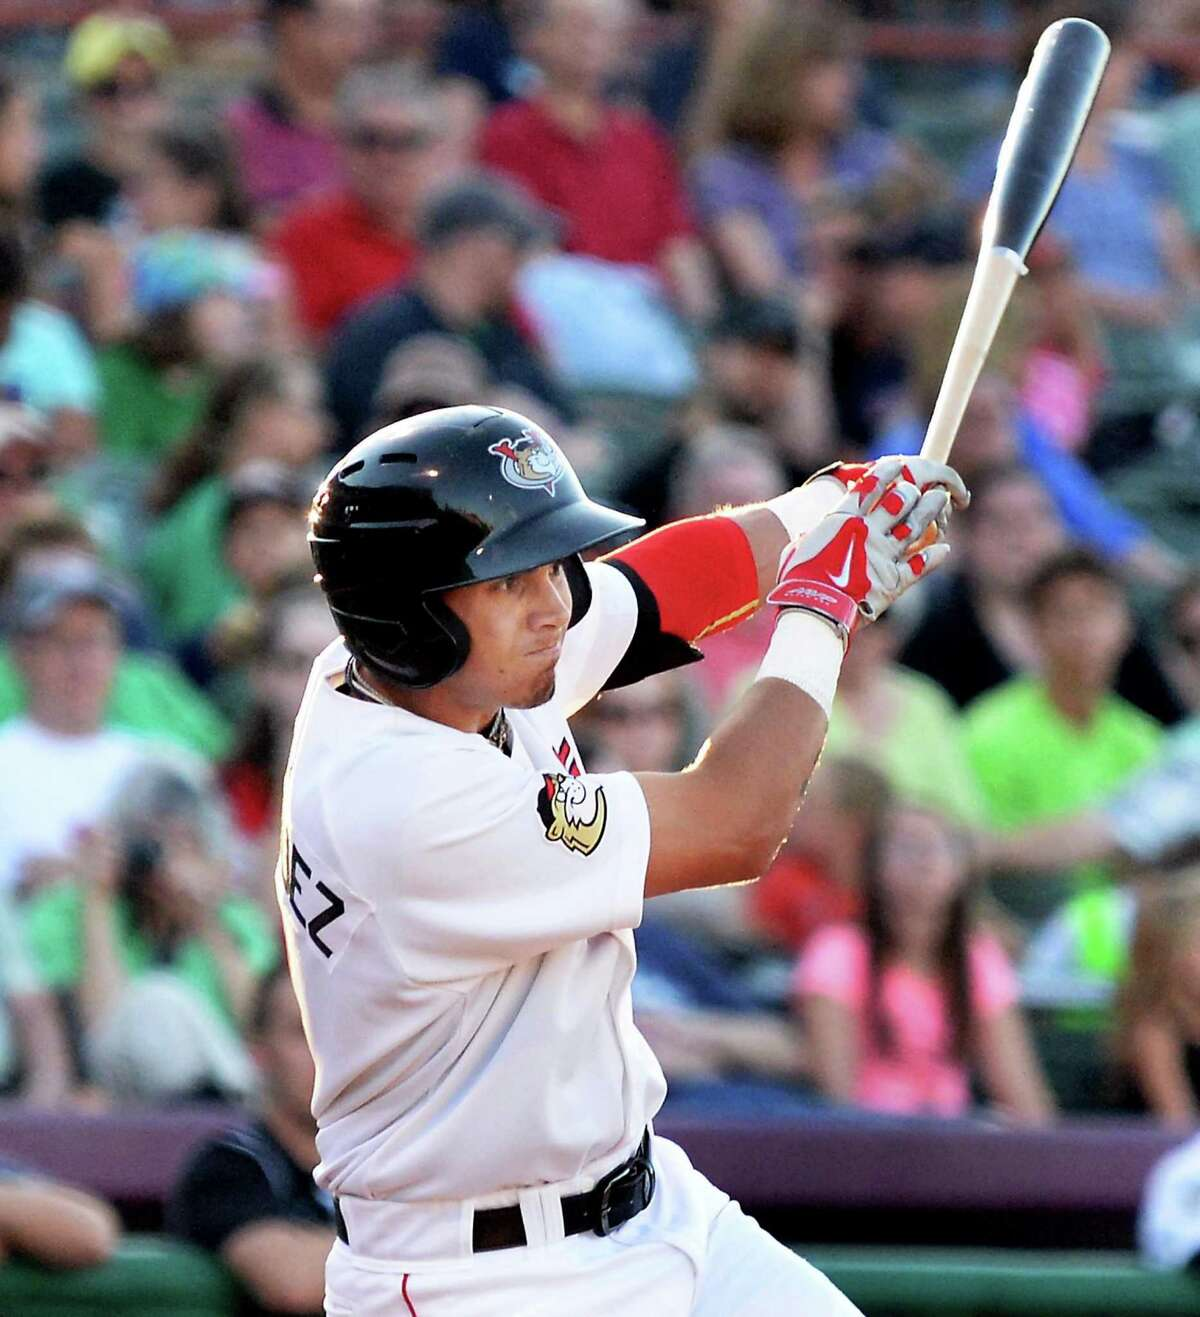 Tri-City ValleyCats lead off batter Alexander Melendez singles during Saturday's game against the Mahoning Valley Scrappers at Joe Bruno Stadium August 1, 2015 in Troy, NY. (John Carl D'Annibale / Times Union)